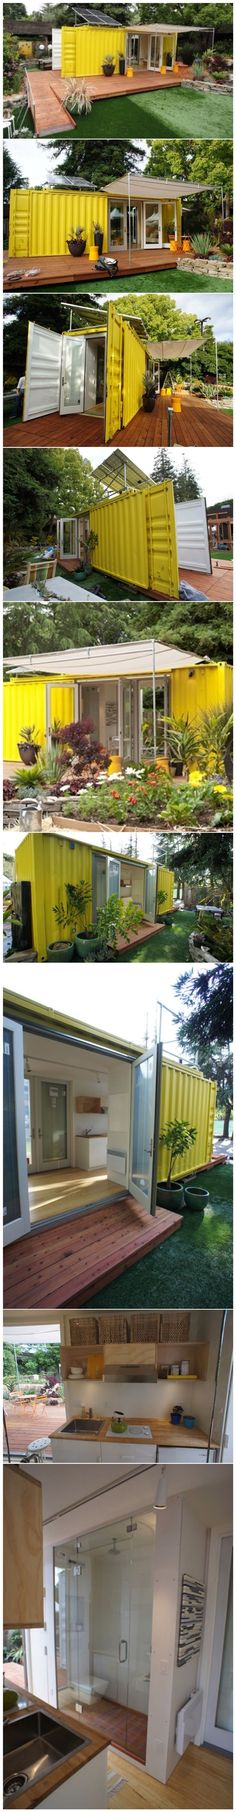 """via www.cargotecture.com This little shipping container house called """"The Nomad"""" was designed for Sunset Magazine by Seattle-Based HyBrid Architecture. The home's shell is a used 24 foot shipping container that provides 192 sq. ft. of interior living space and can sleep four people. The house has a galley kitchen, a bathroom and several exterior openings."""